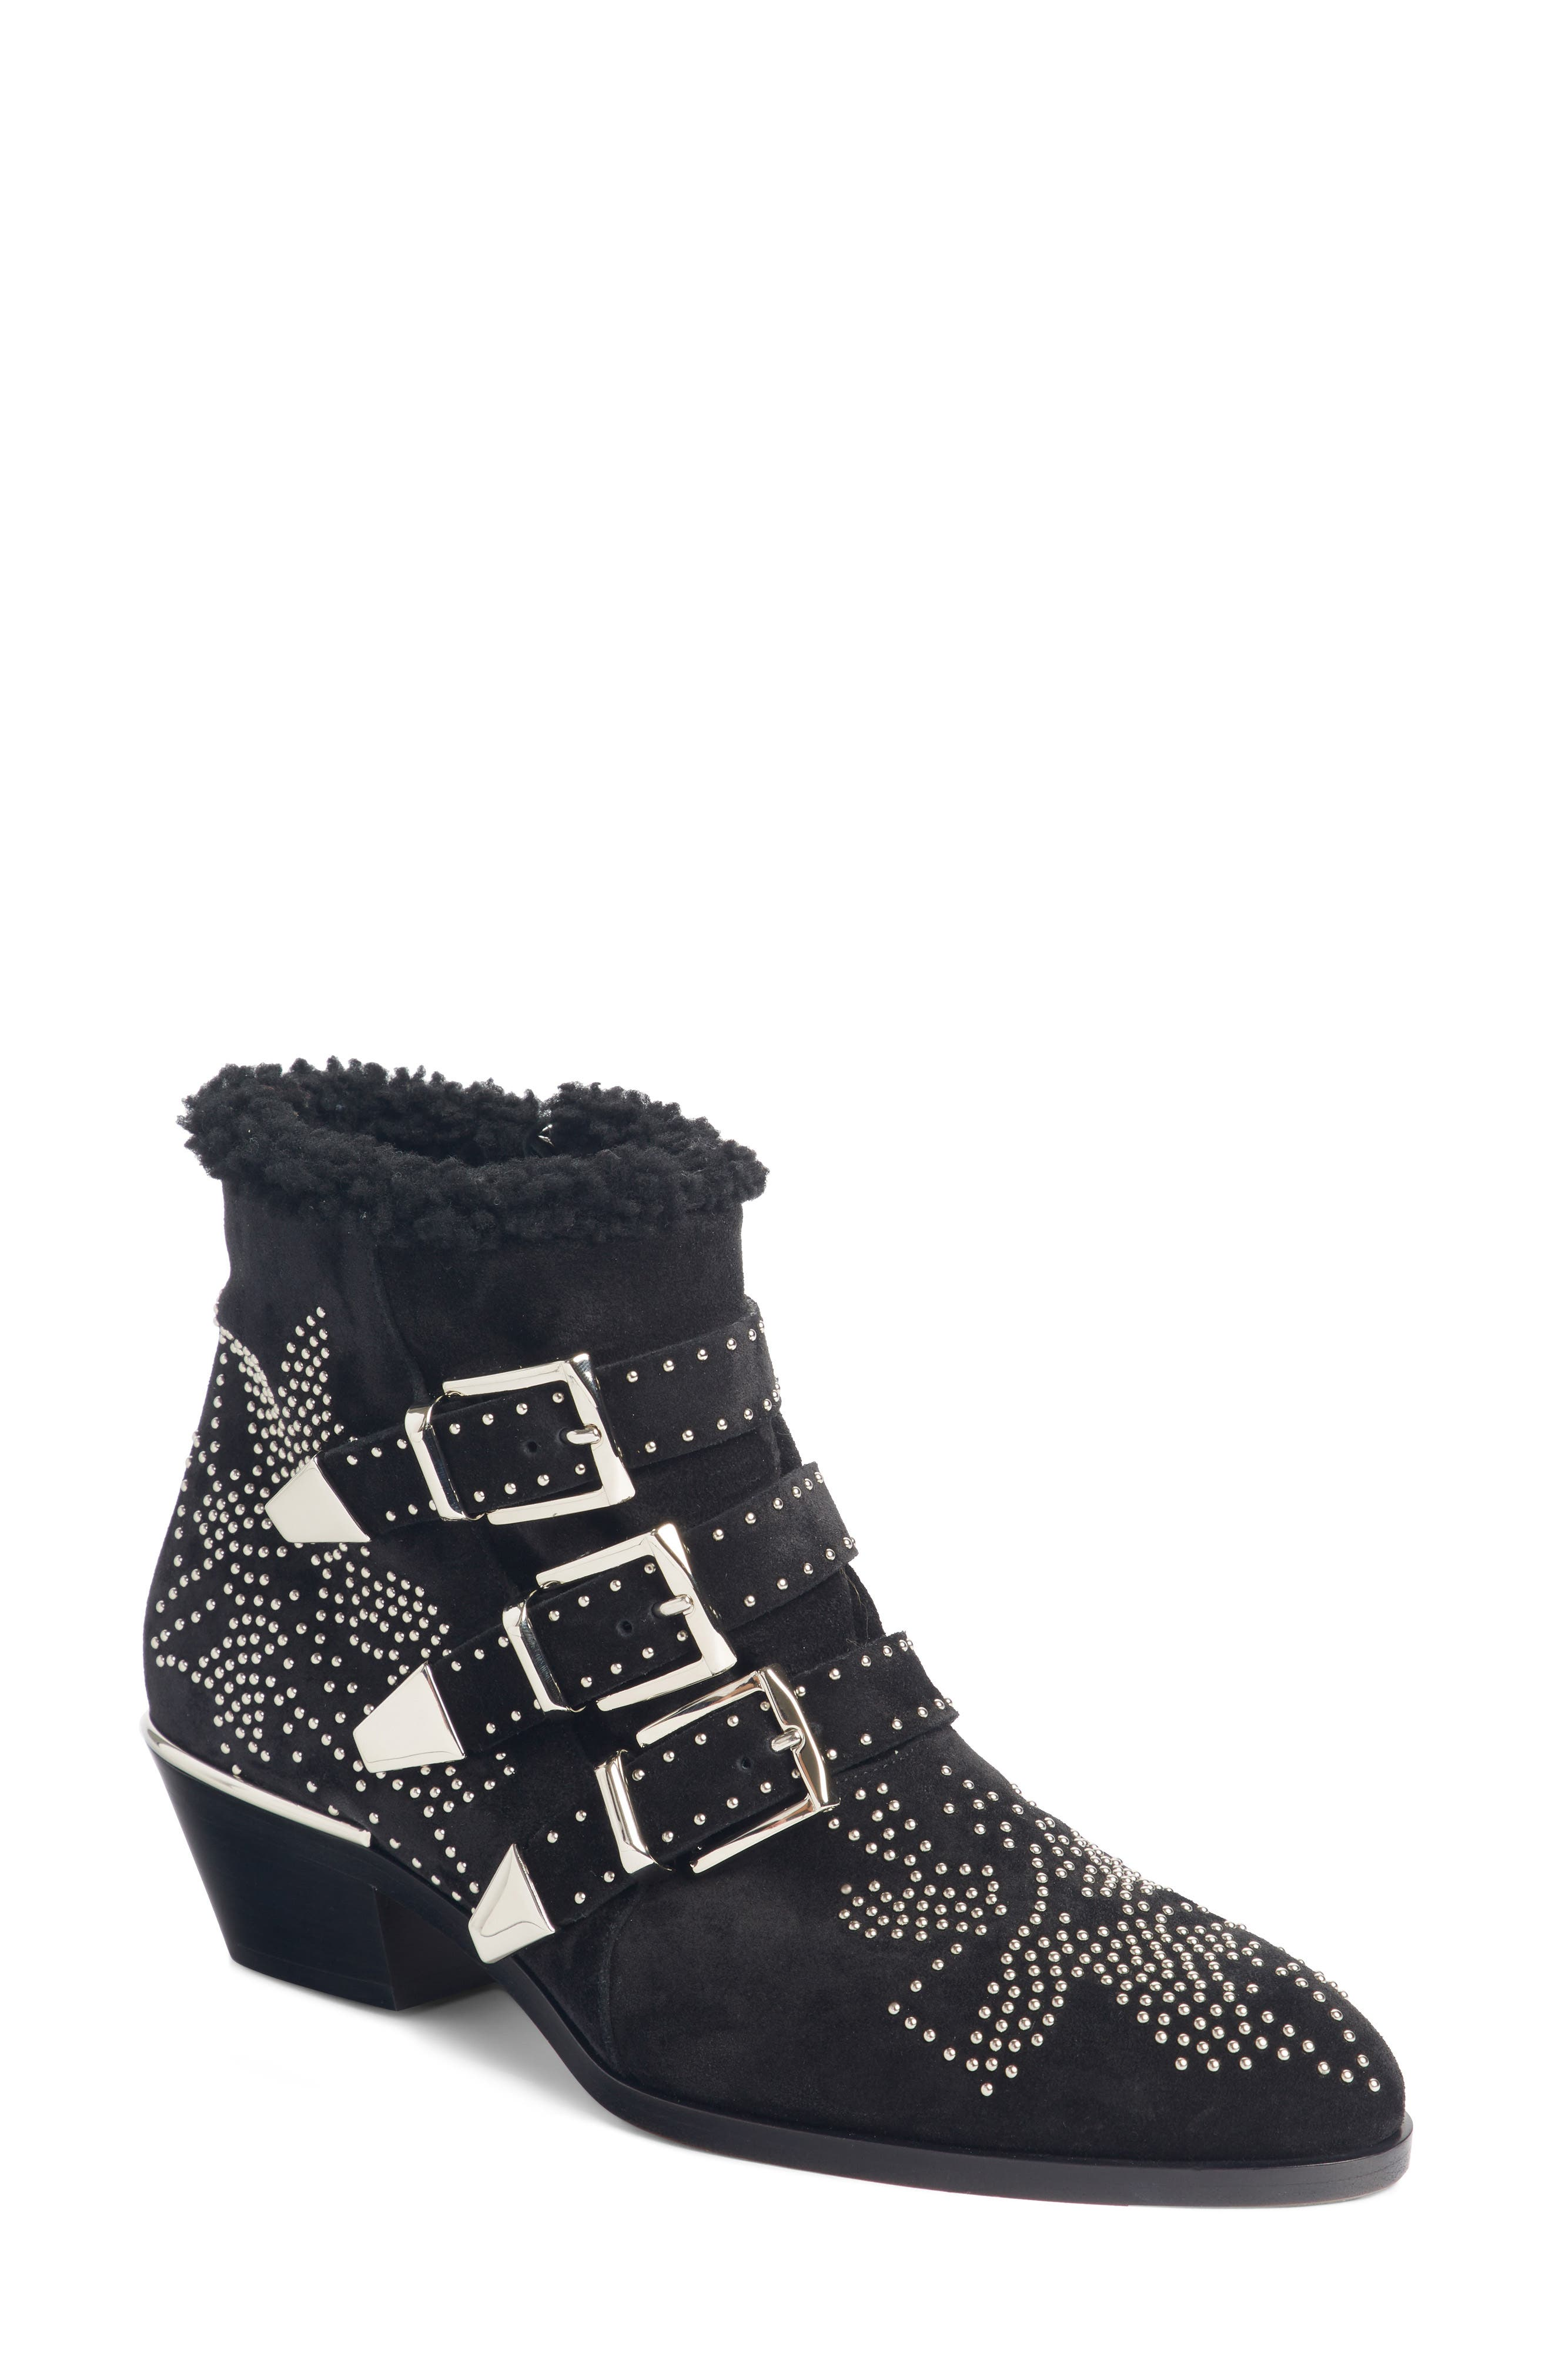 Susanna Genuine Shearling Studded Bootie,                         Main,                         color, BLACK